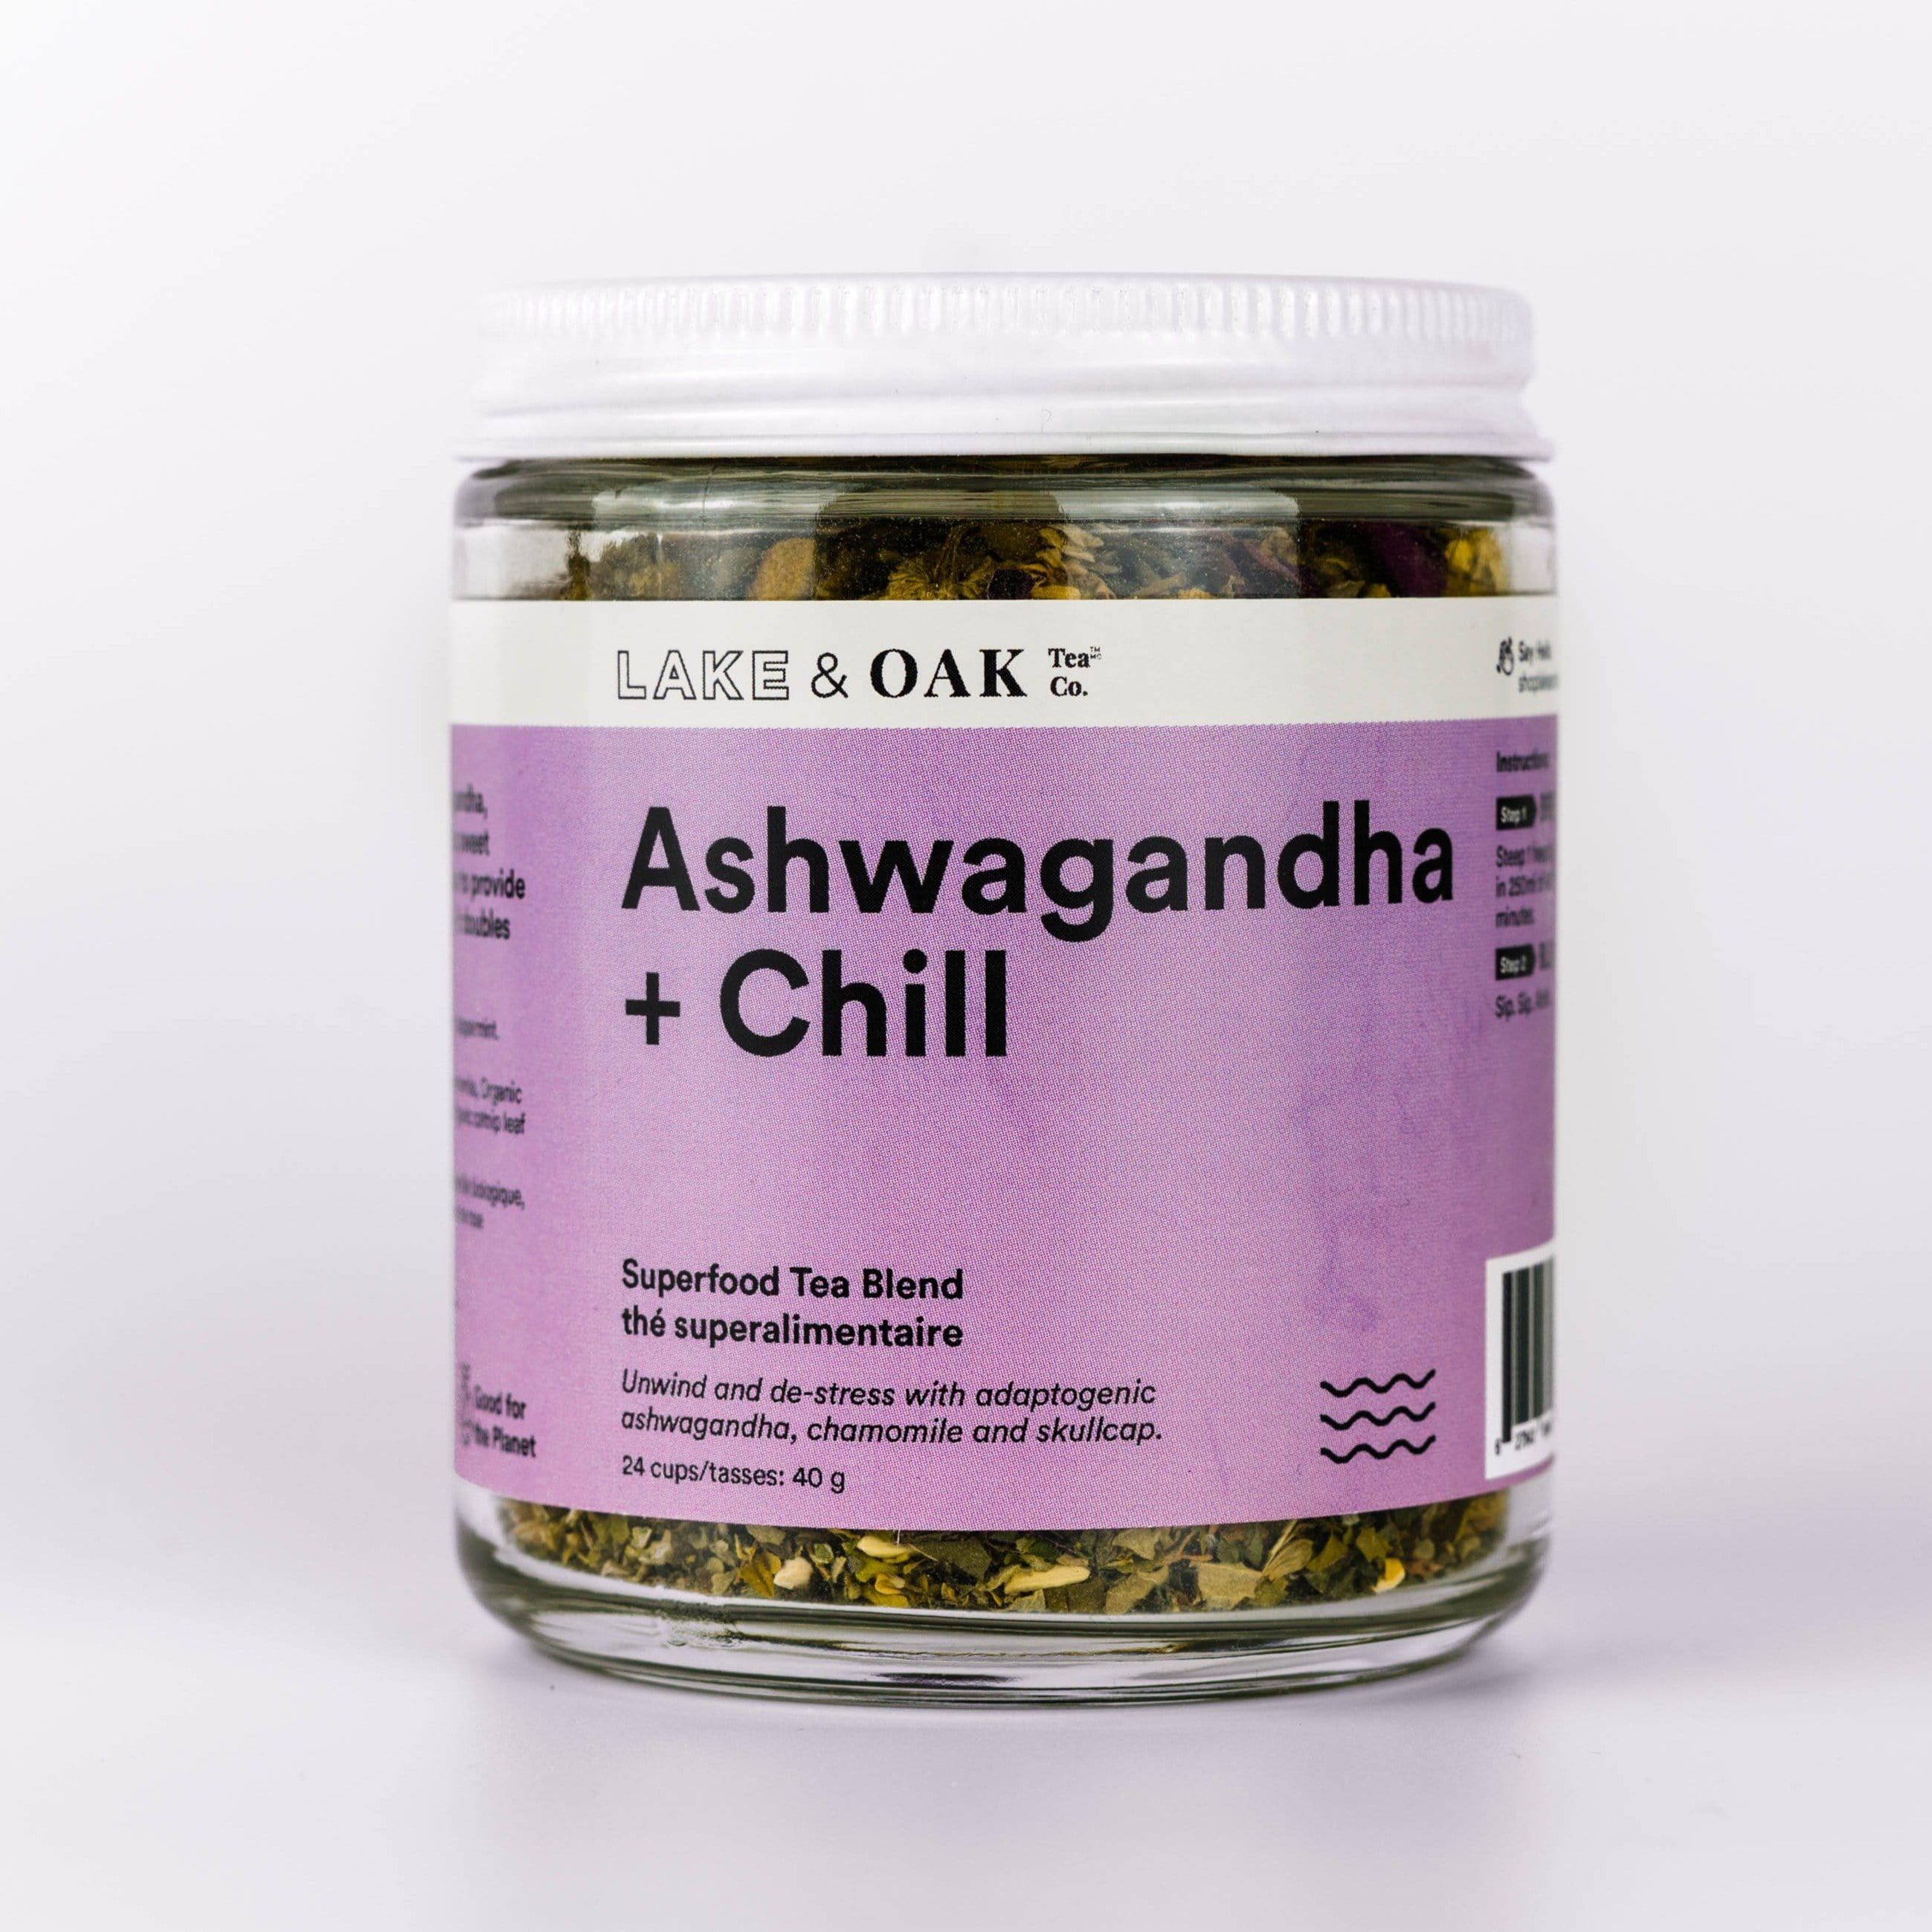 Lake & Oak Tea Ashwagandha + Chill